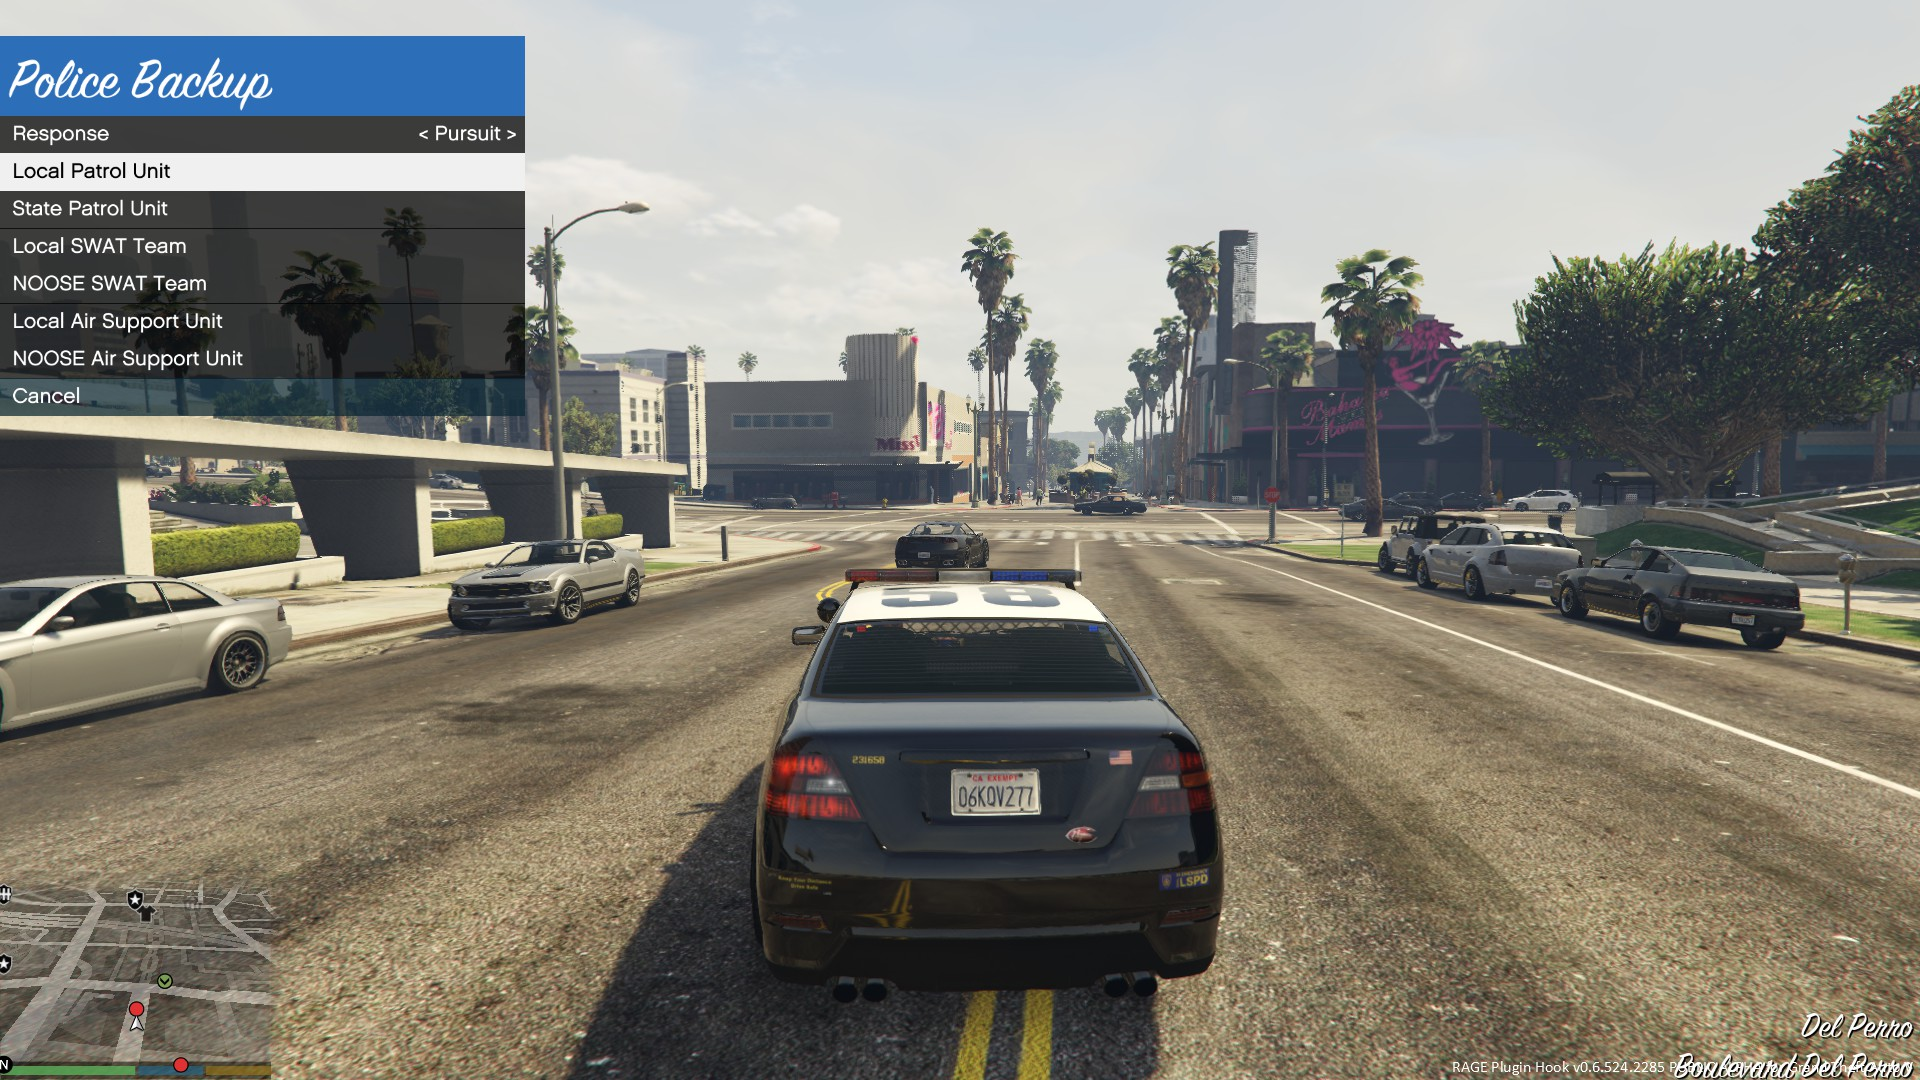 How to be a cop in gta 5 xbox 1